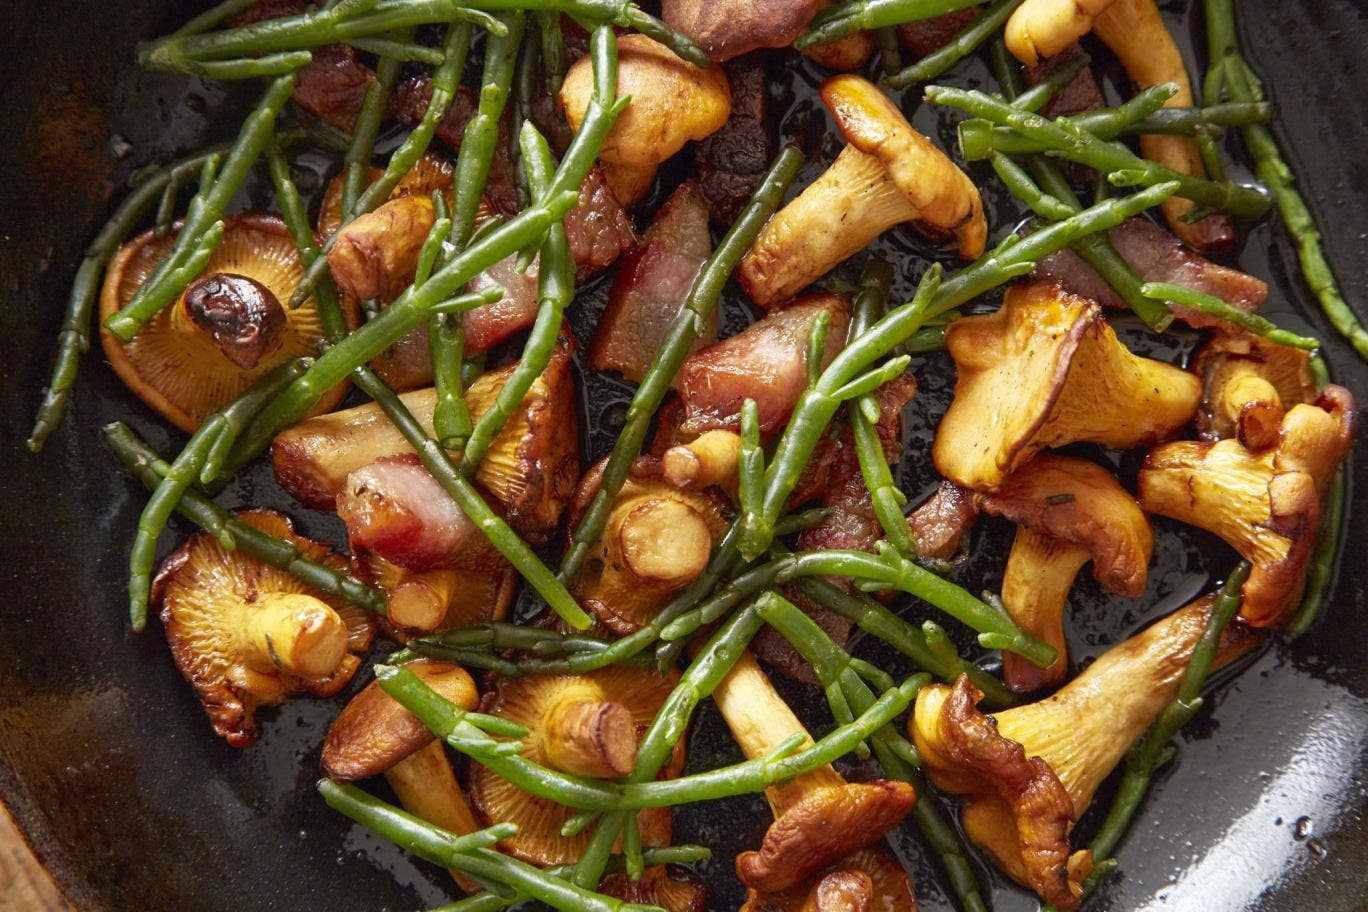 A plate of girolles, samphire and bacon